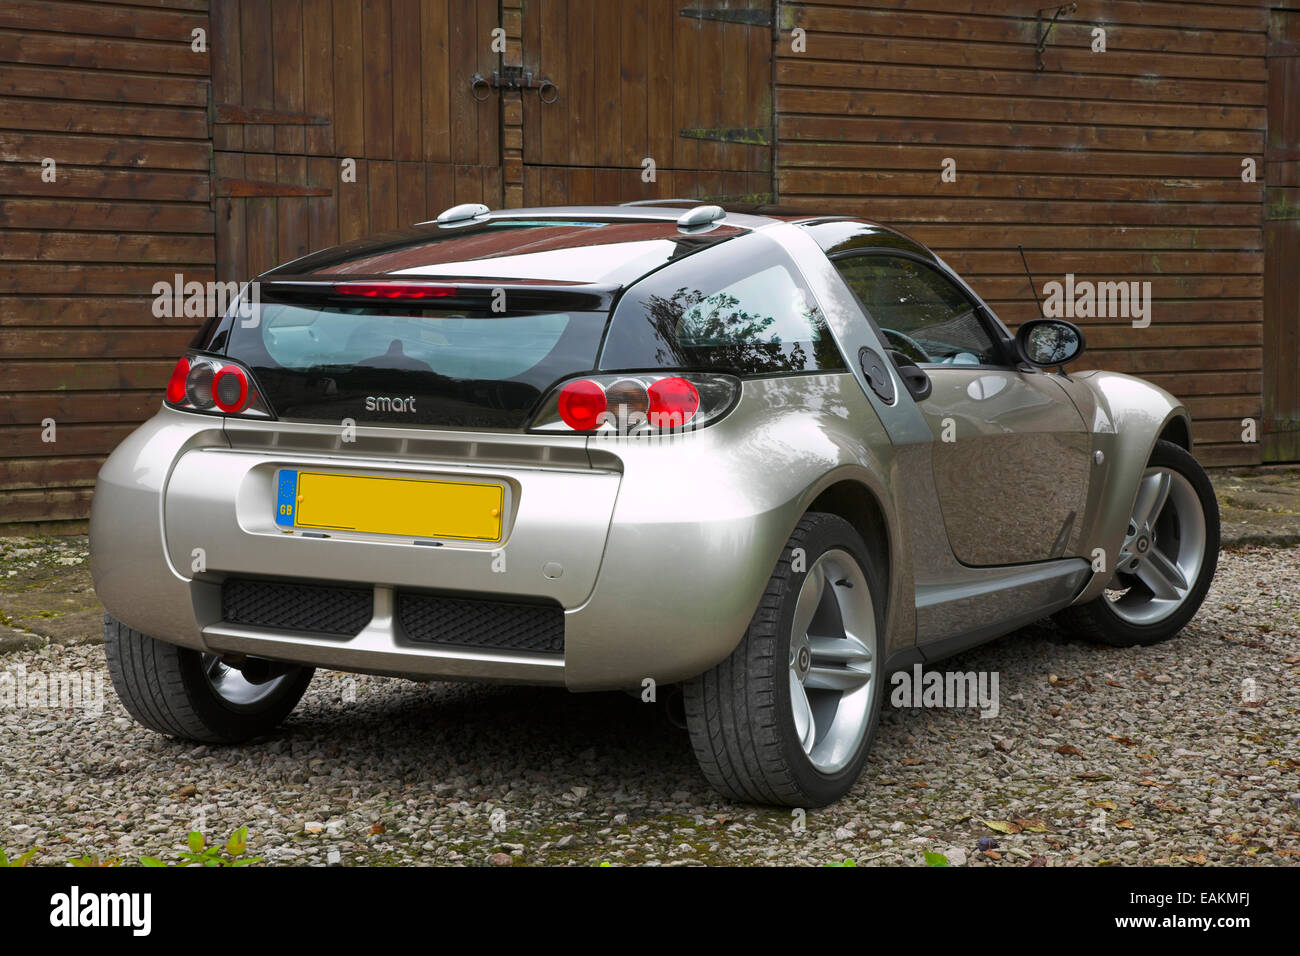 gold coloured smart roadster coupe car stock photo royalty free image 75421238 alamy. Black Bedroom Furniture Sets. Home Design Ideas